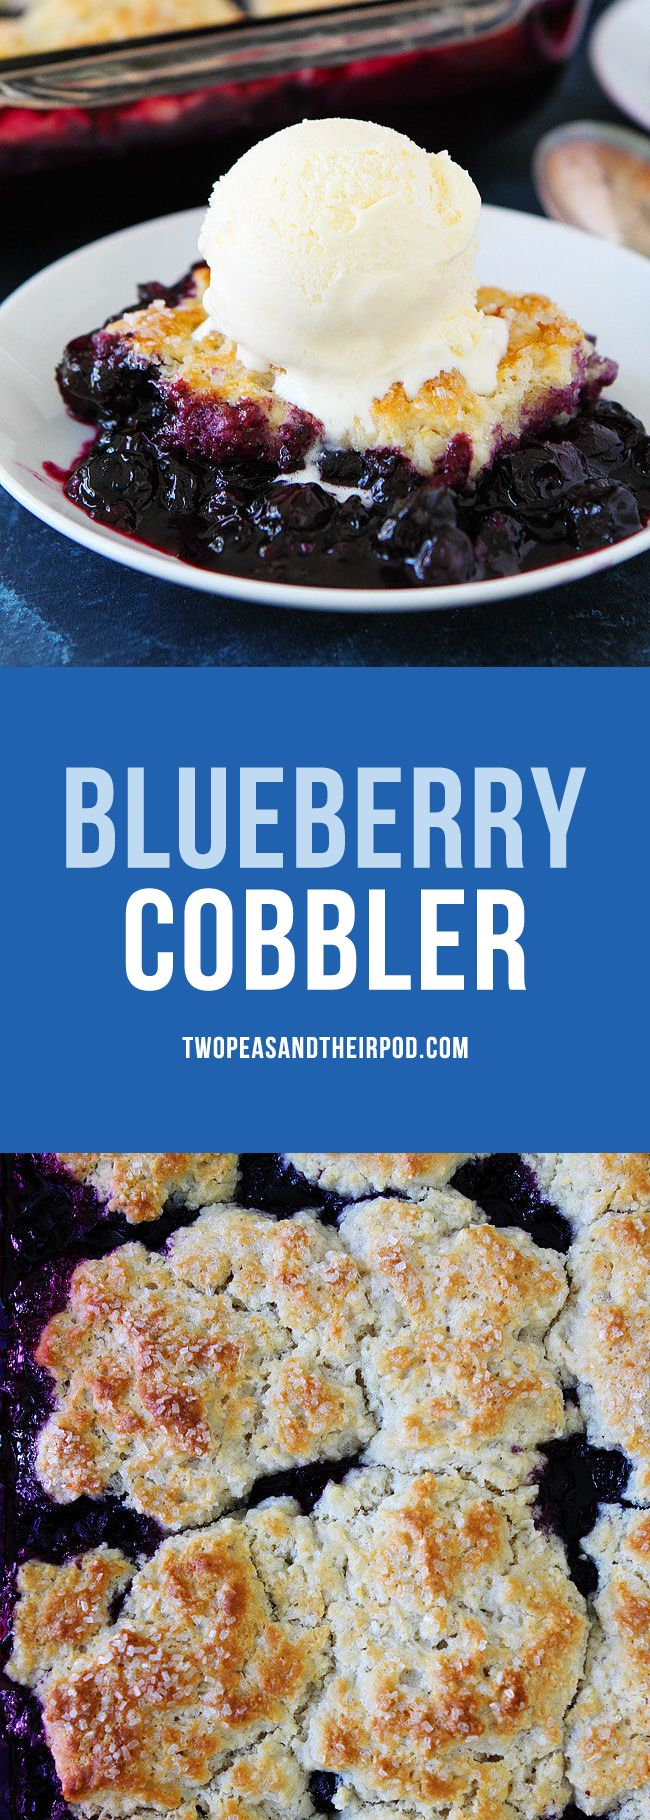 Blueberry Cobbler with an easy buttermilk biscuit topping makes the BEST summer dessert! Top with vanilla ice cream and you will be in dessert heaven! You can use fresh or frozen blueberries!